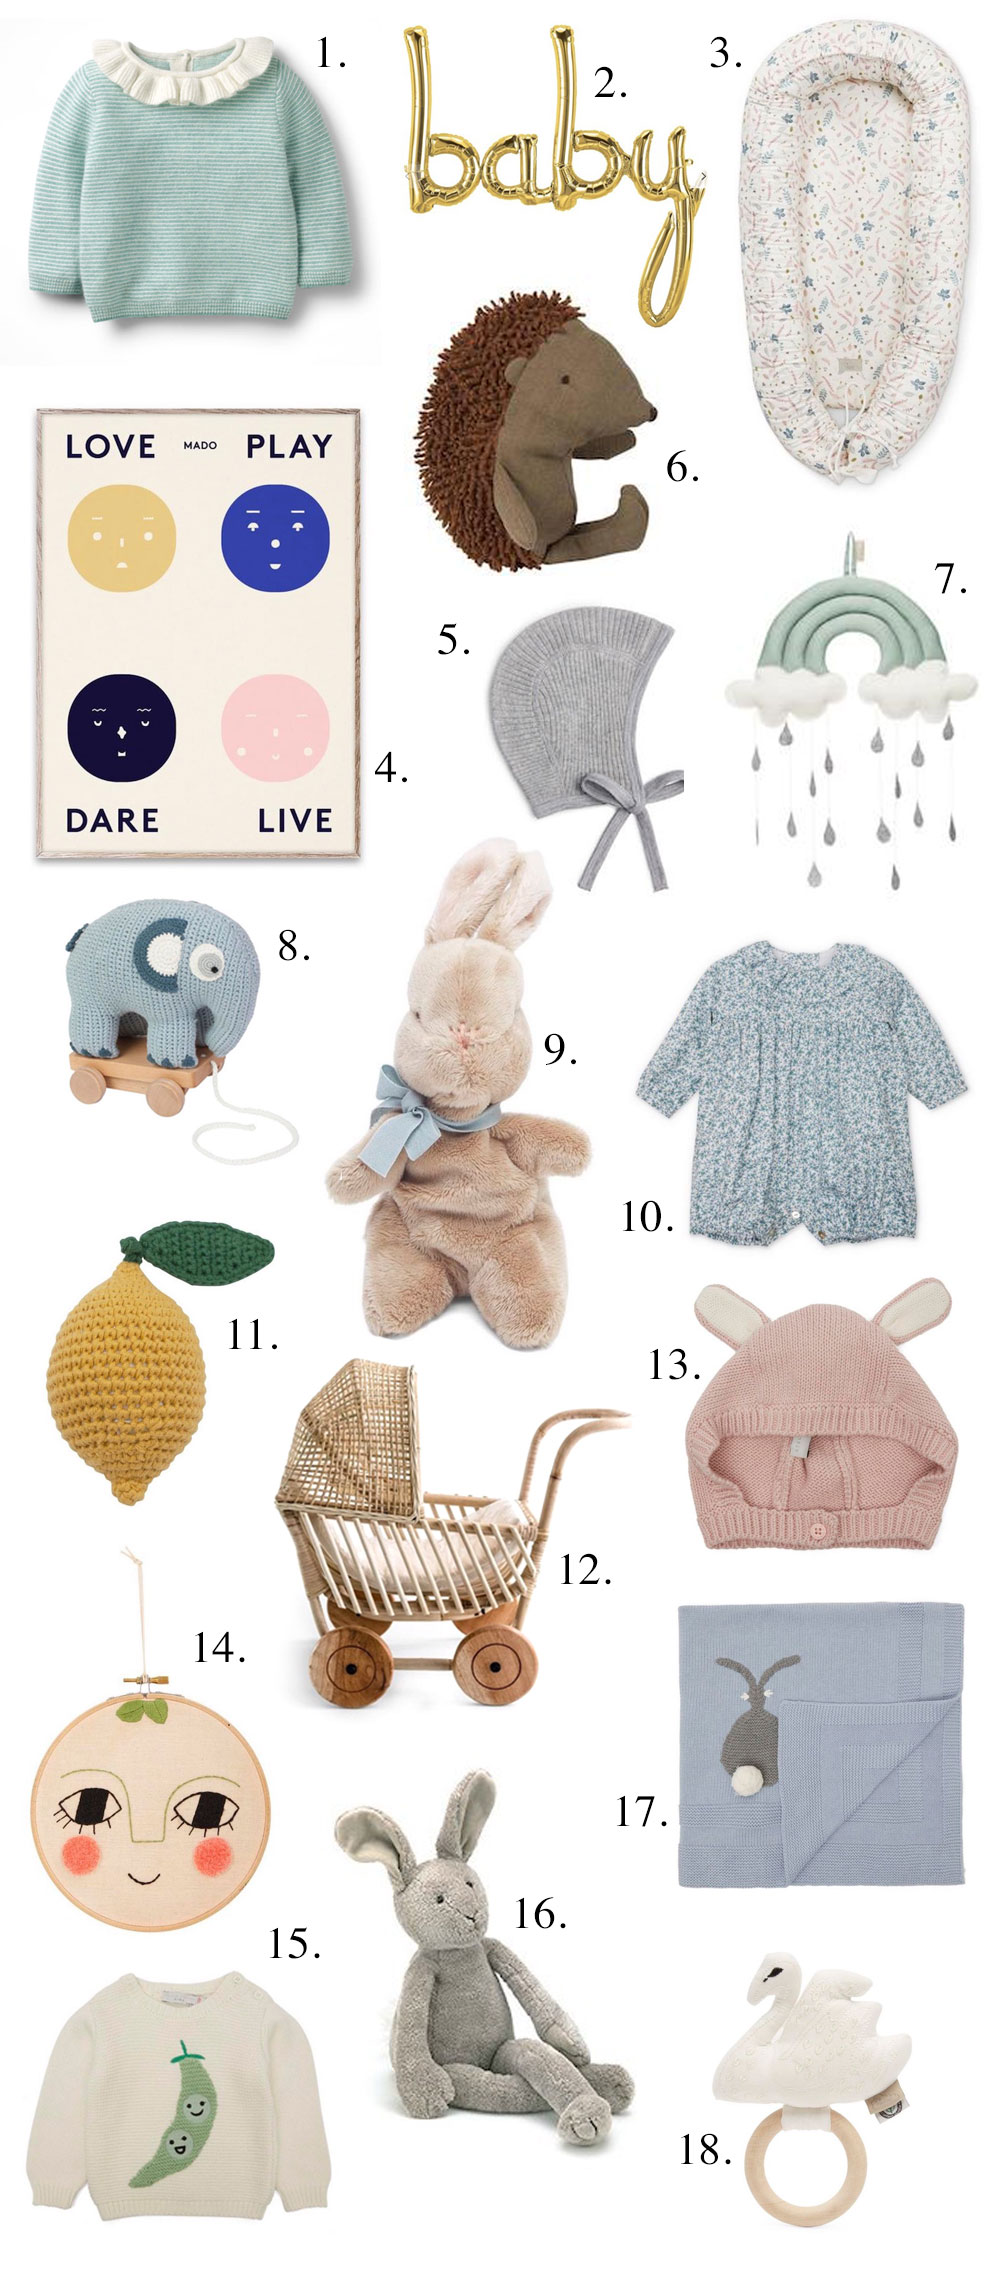 Cashmere baby jumper | Boden 2. Baby balloon | Northstar Balloons 3. Baby nest | Cam Cam Copenhagen 4. Print | Mado 5. Cashmere hat | Arket & The Perfect Baby Gift u2013 LittleSpree - Style inspiration by Sarah Clark